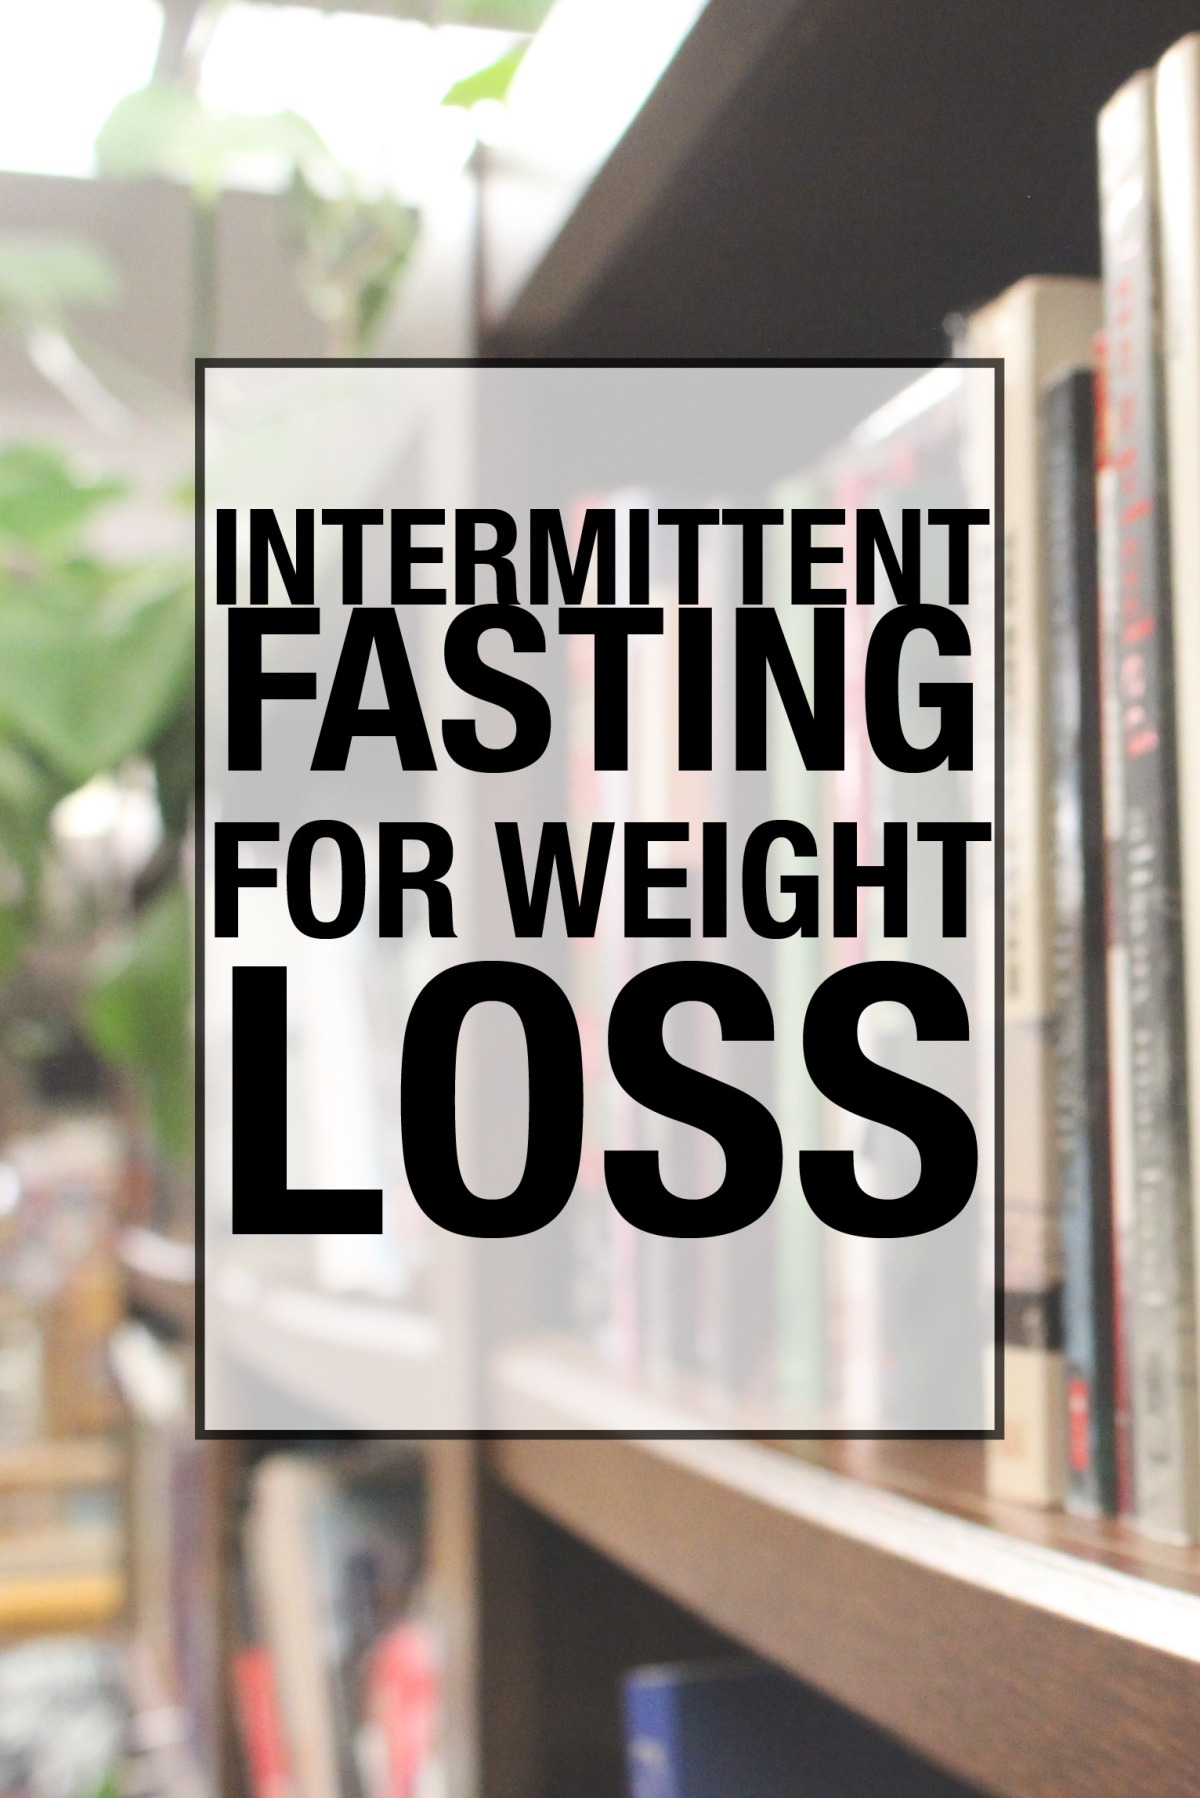 Is Intermittent Fasting Good For Weight Loss